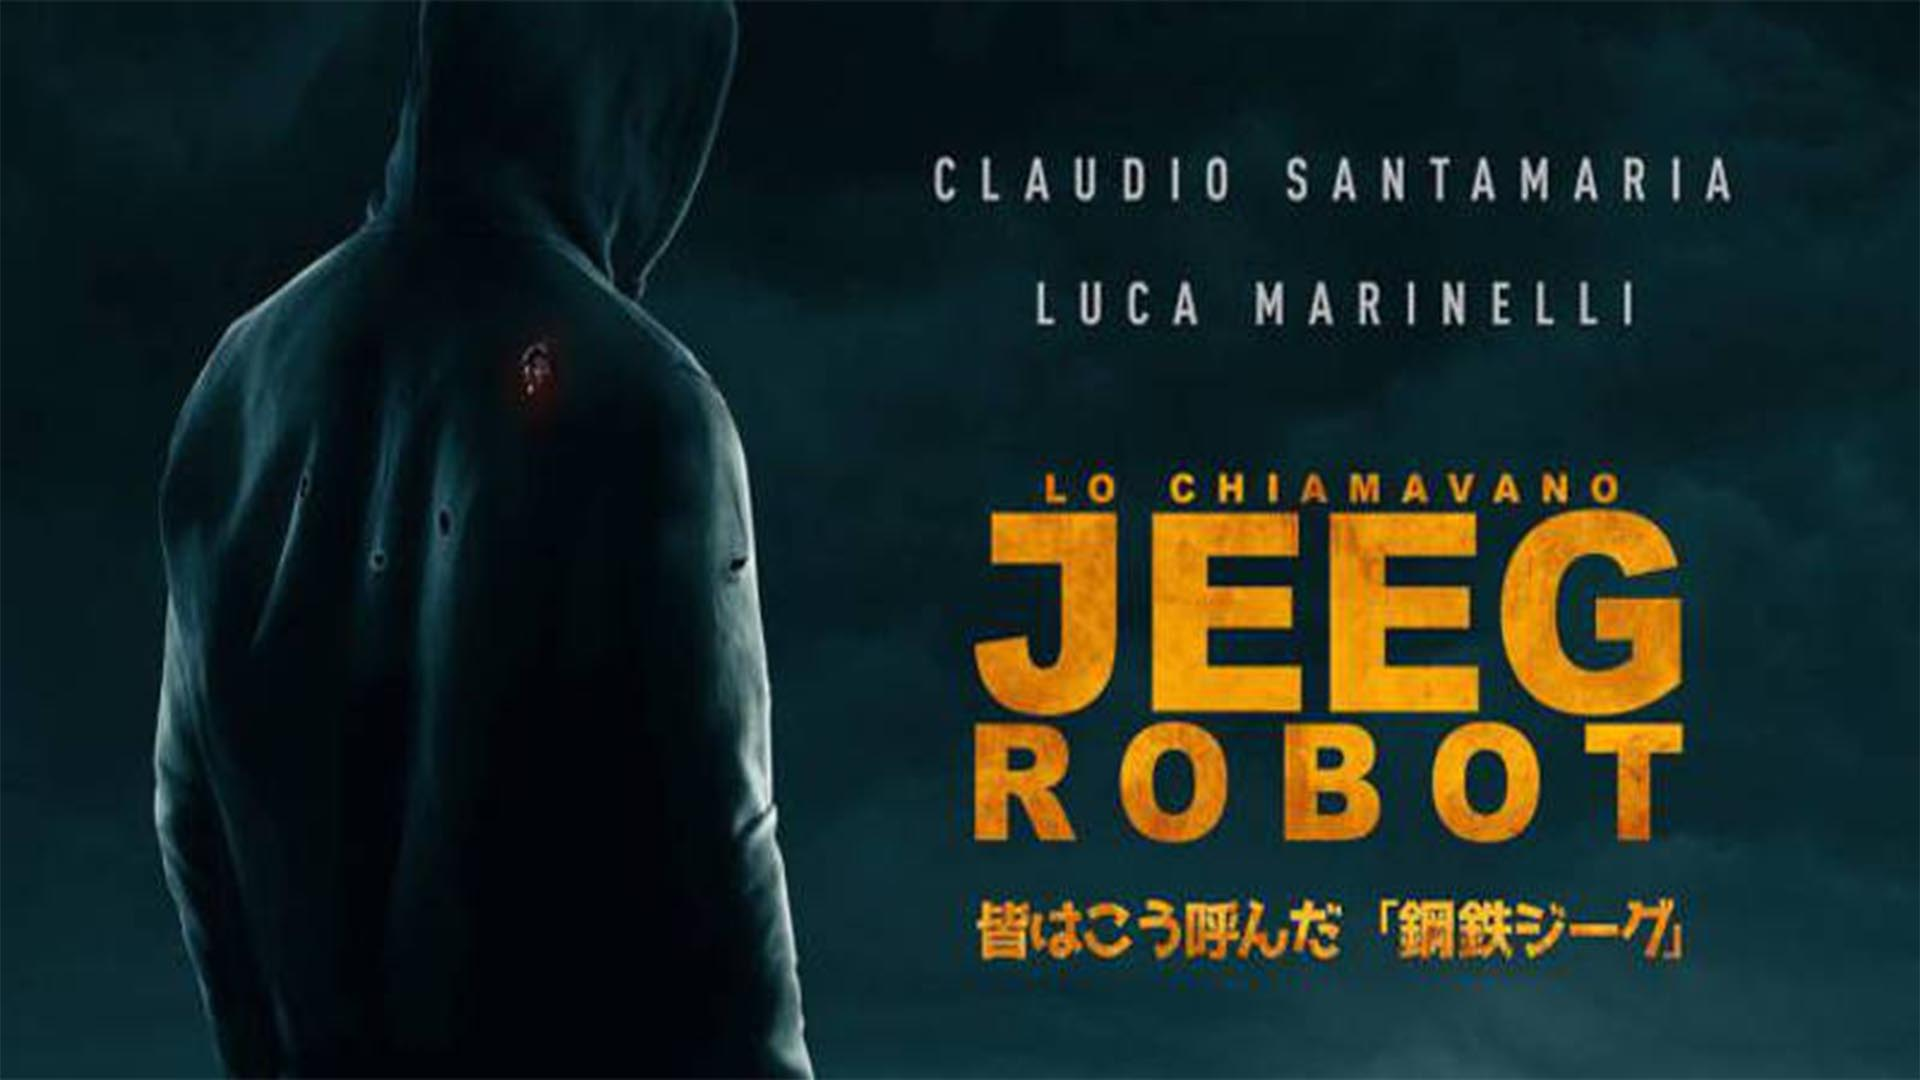 lo chiamavano jeeg robot - photo #13